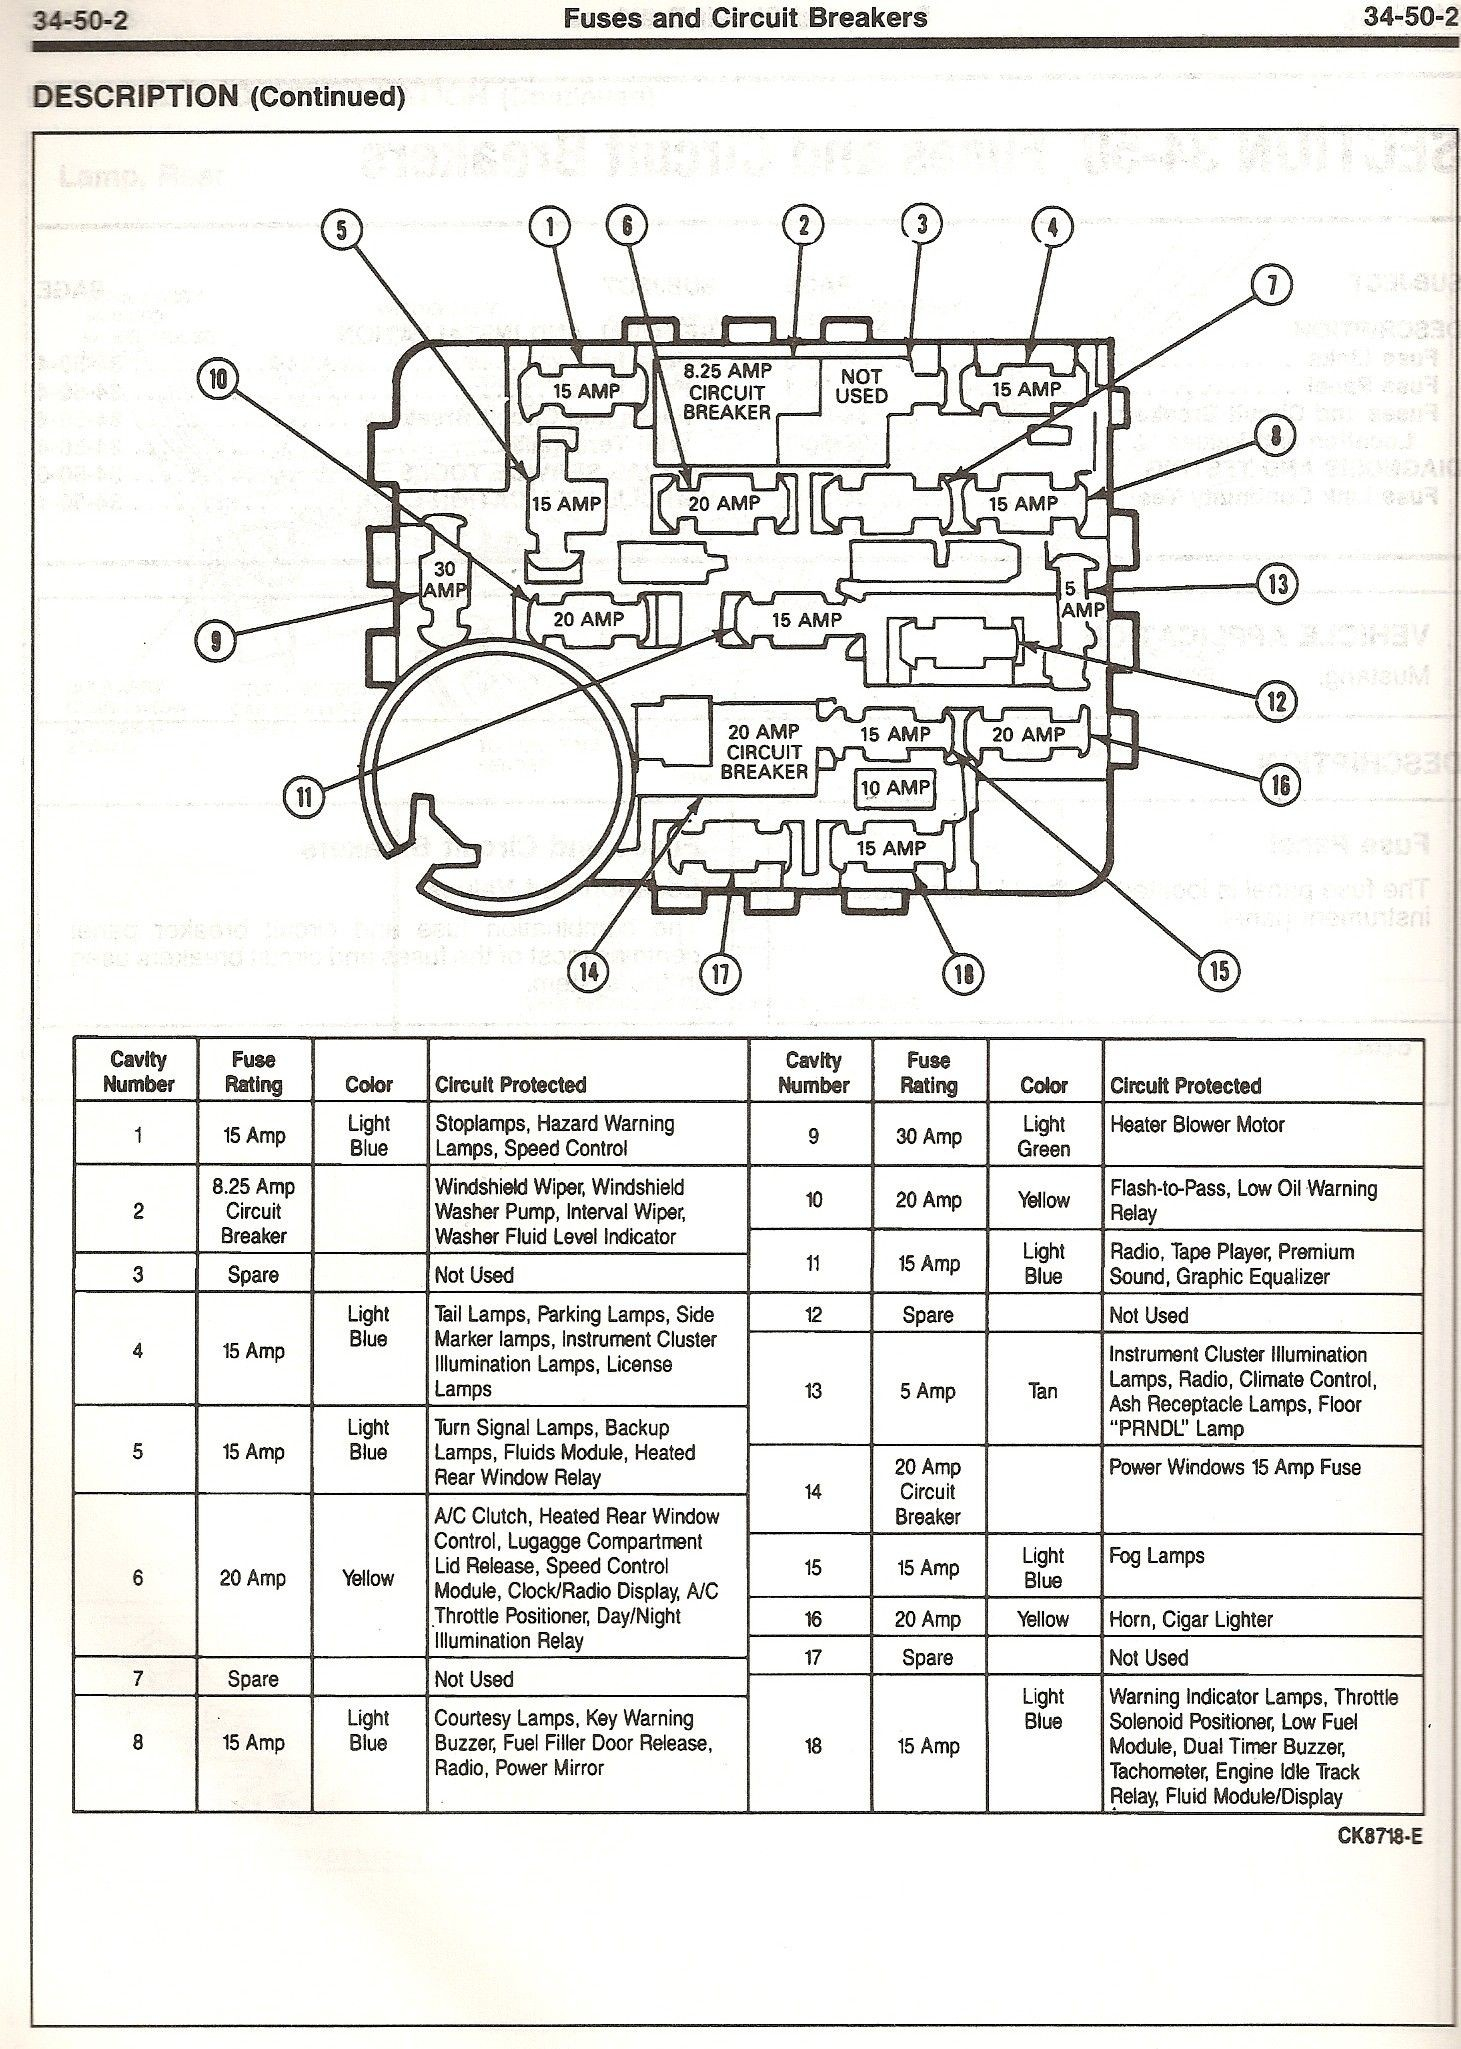 1986 ford F150 Under Hood Diagram Pin by Ethan Meche On Fuse Box In 2020 Of 1986 ford F150 Under Hood Diagram